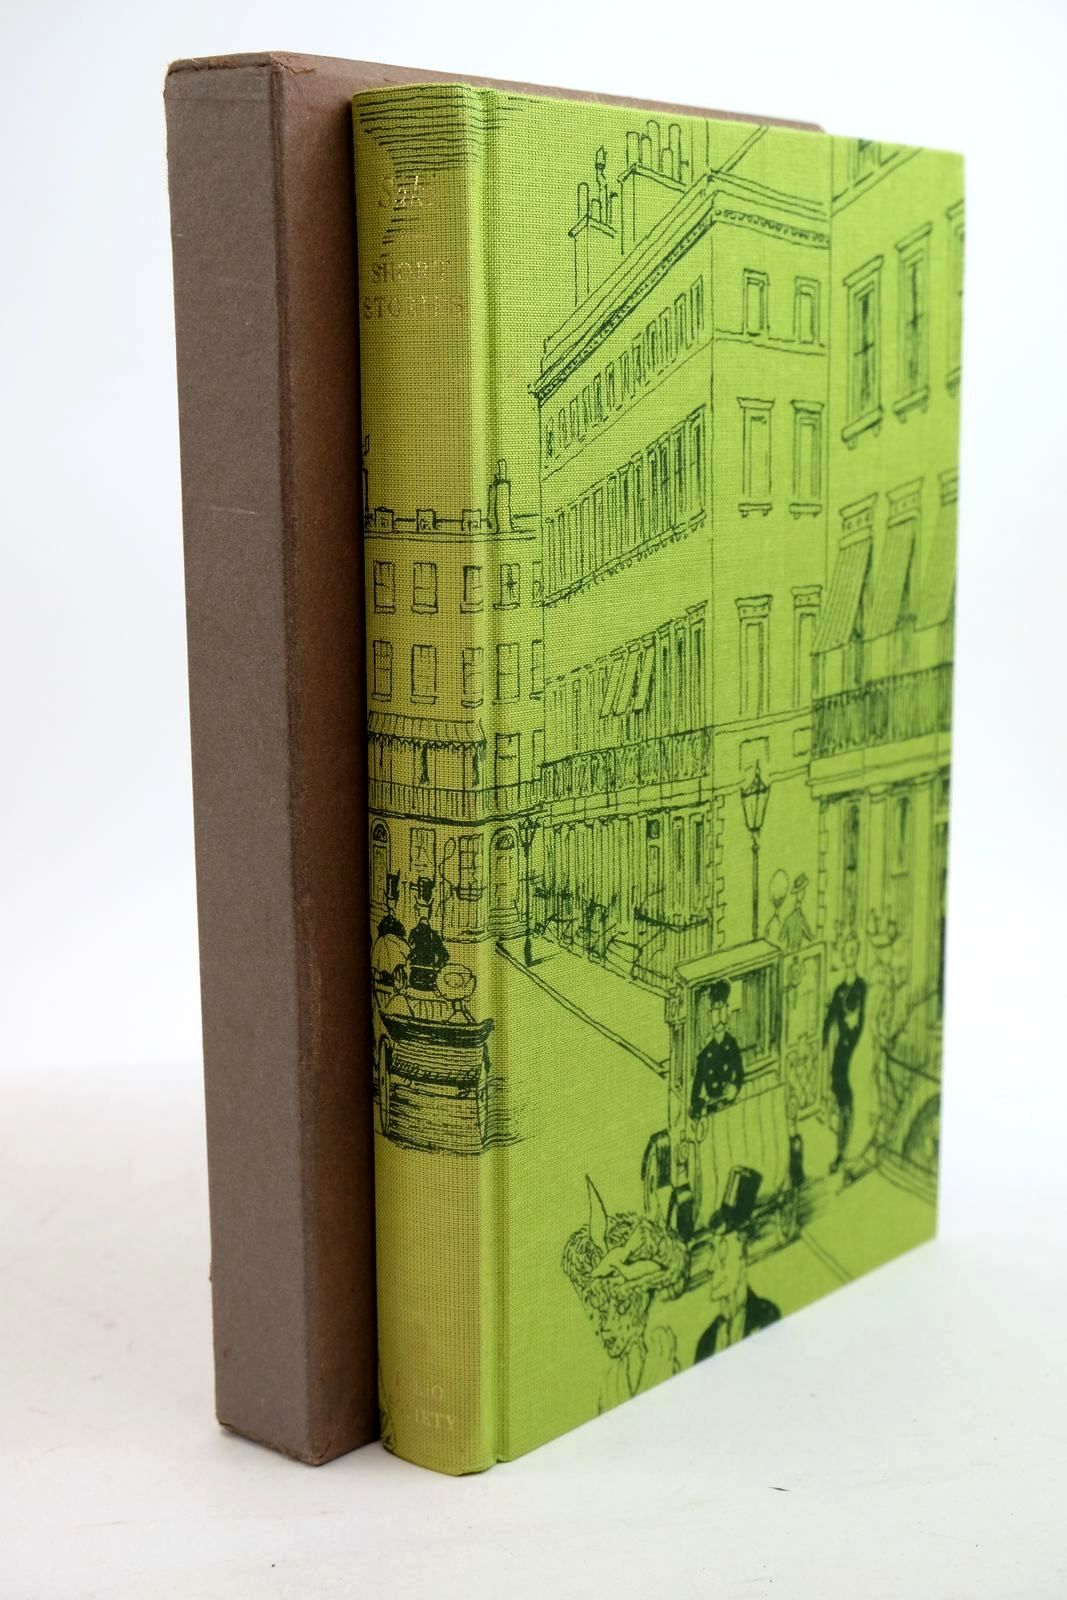 Photo of SHORT STORIES written by Saki,  Letts, John illustrated by Lancaster, Osbert published by Folio Society (STOCK CODE: 1321352)  for sale by Stella & Rose's Books